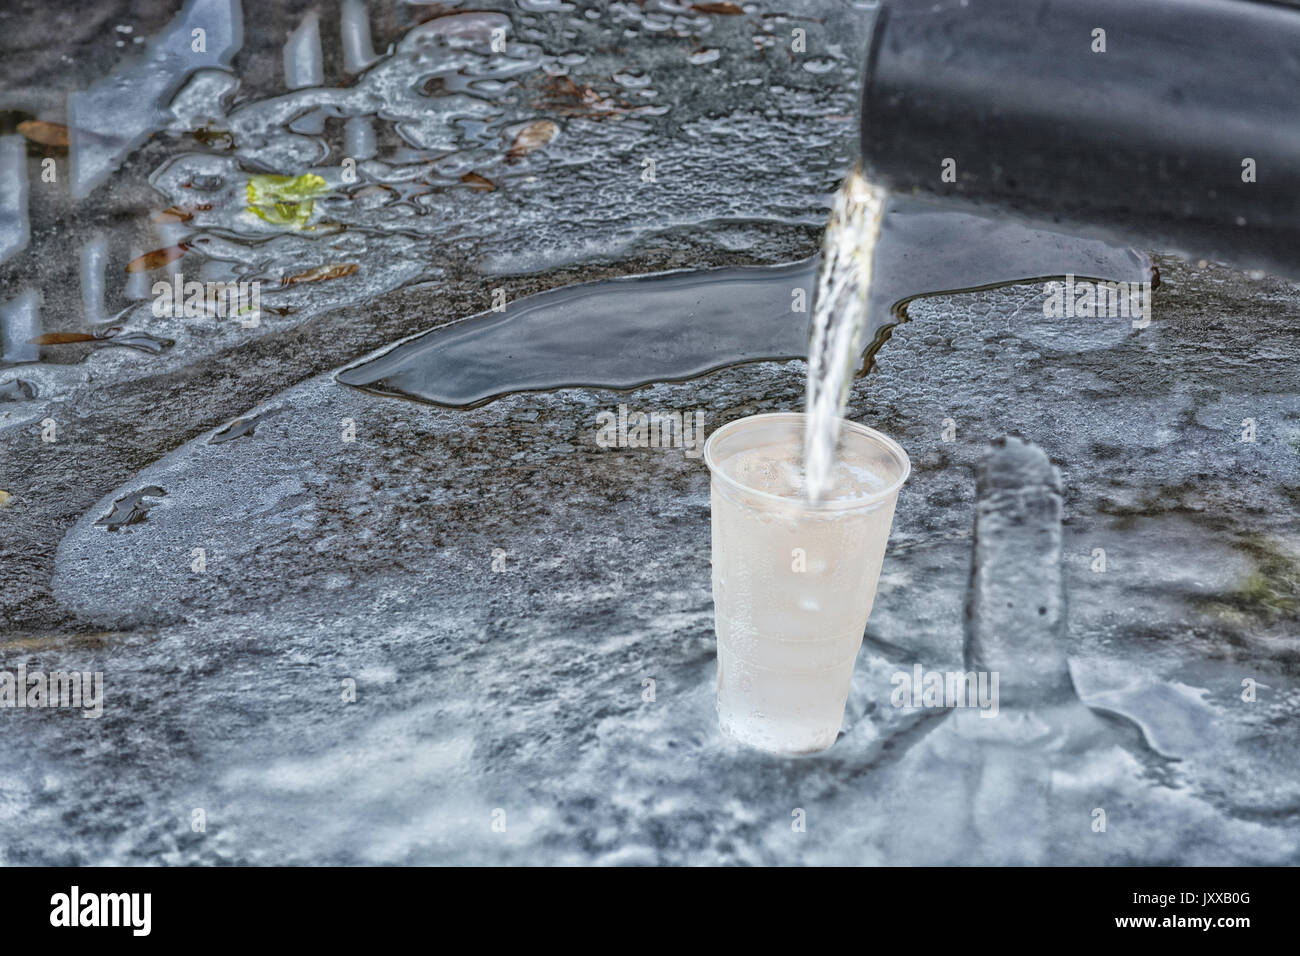 Natural Source Cold Clean Water Stock Photos Amp Natural Source Cold Clean Water Stock Images